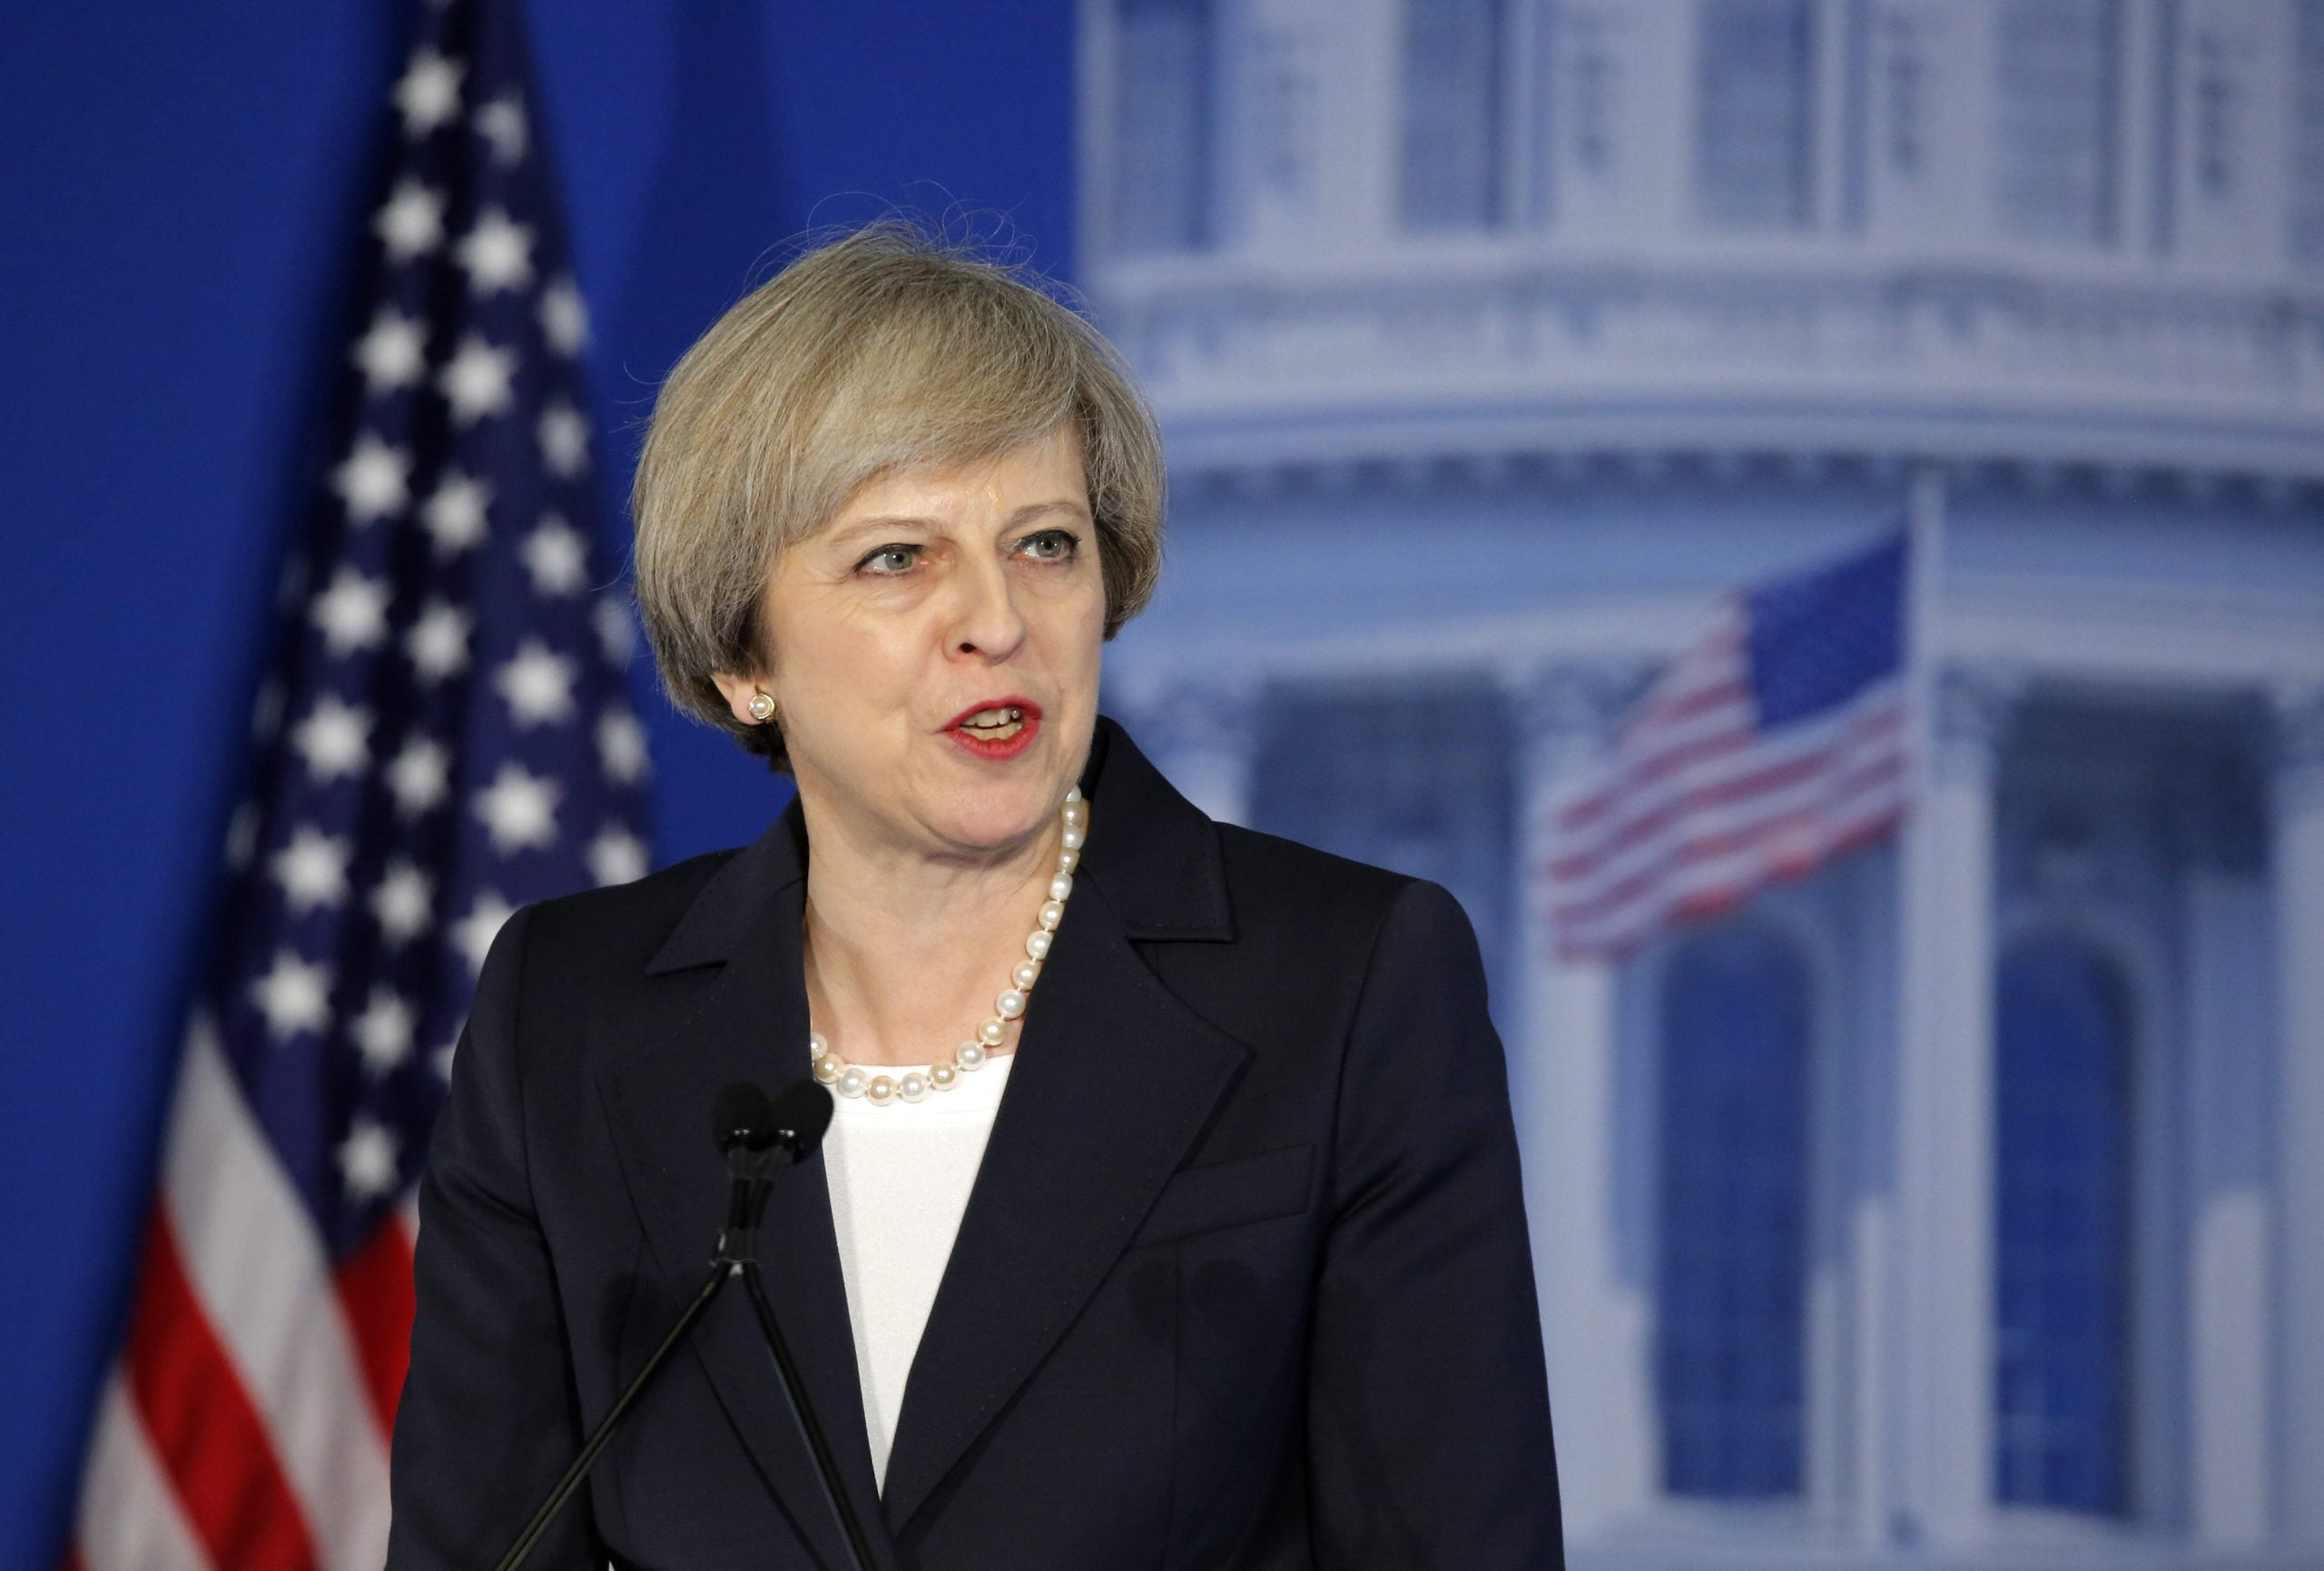 Like any woman working with a misogynist, Theresa May should call out Donald Trump's sexism